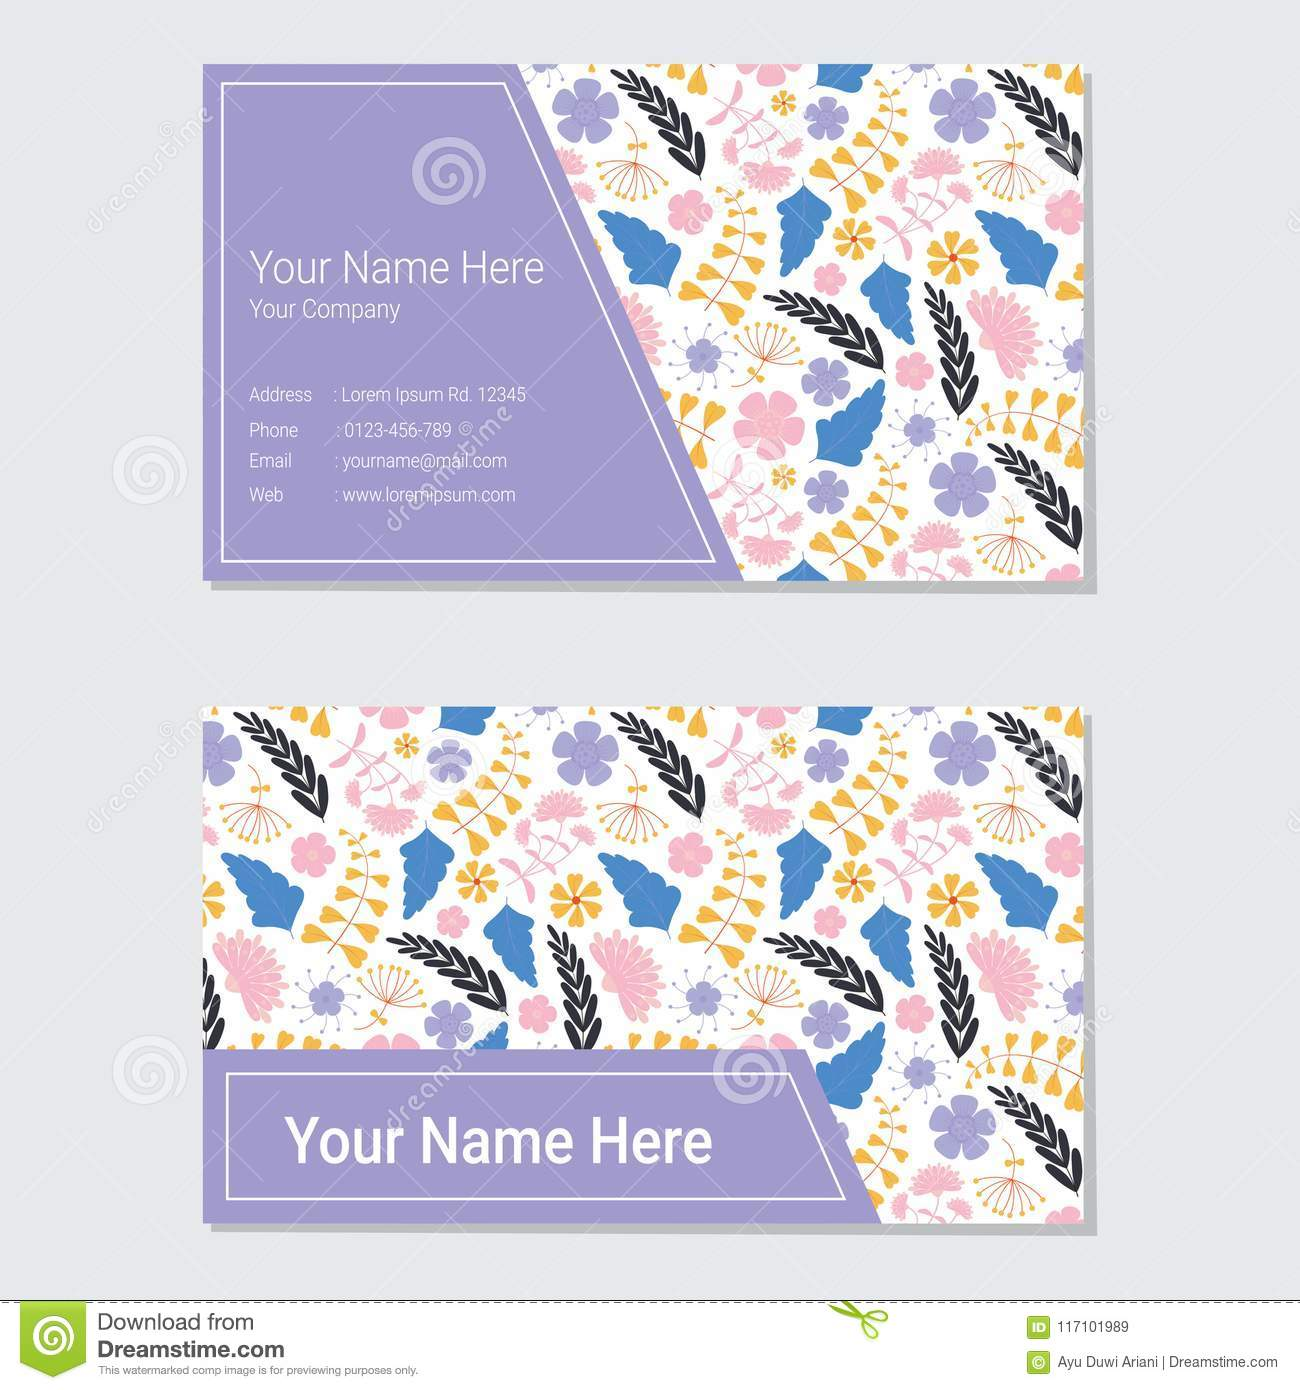 Floral business card template with pink and purple flower background download floral business card template with pink and purple flower background stock illustration illustration of accmission Choice Image